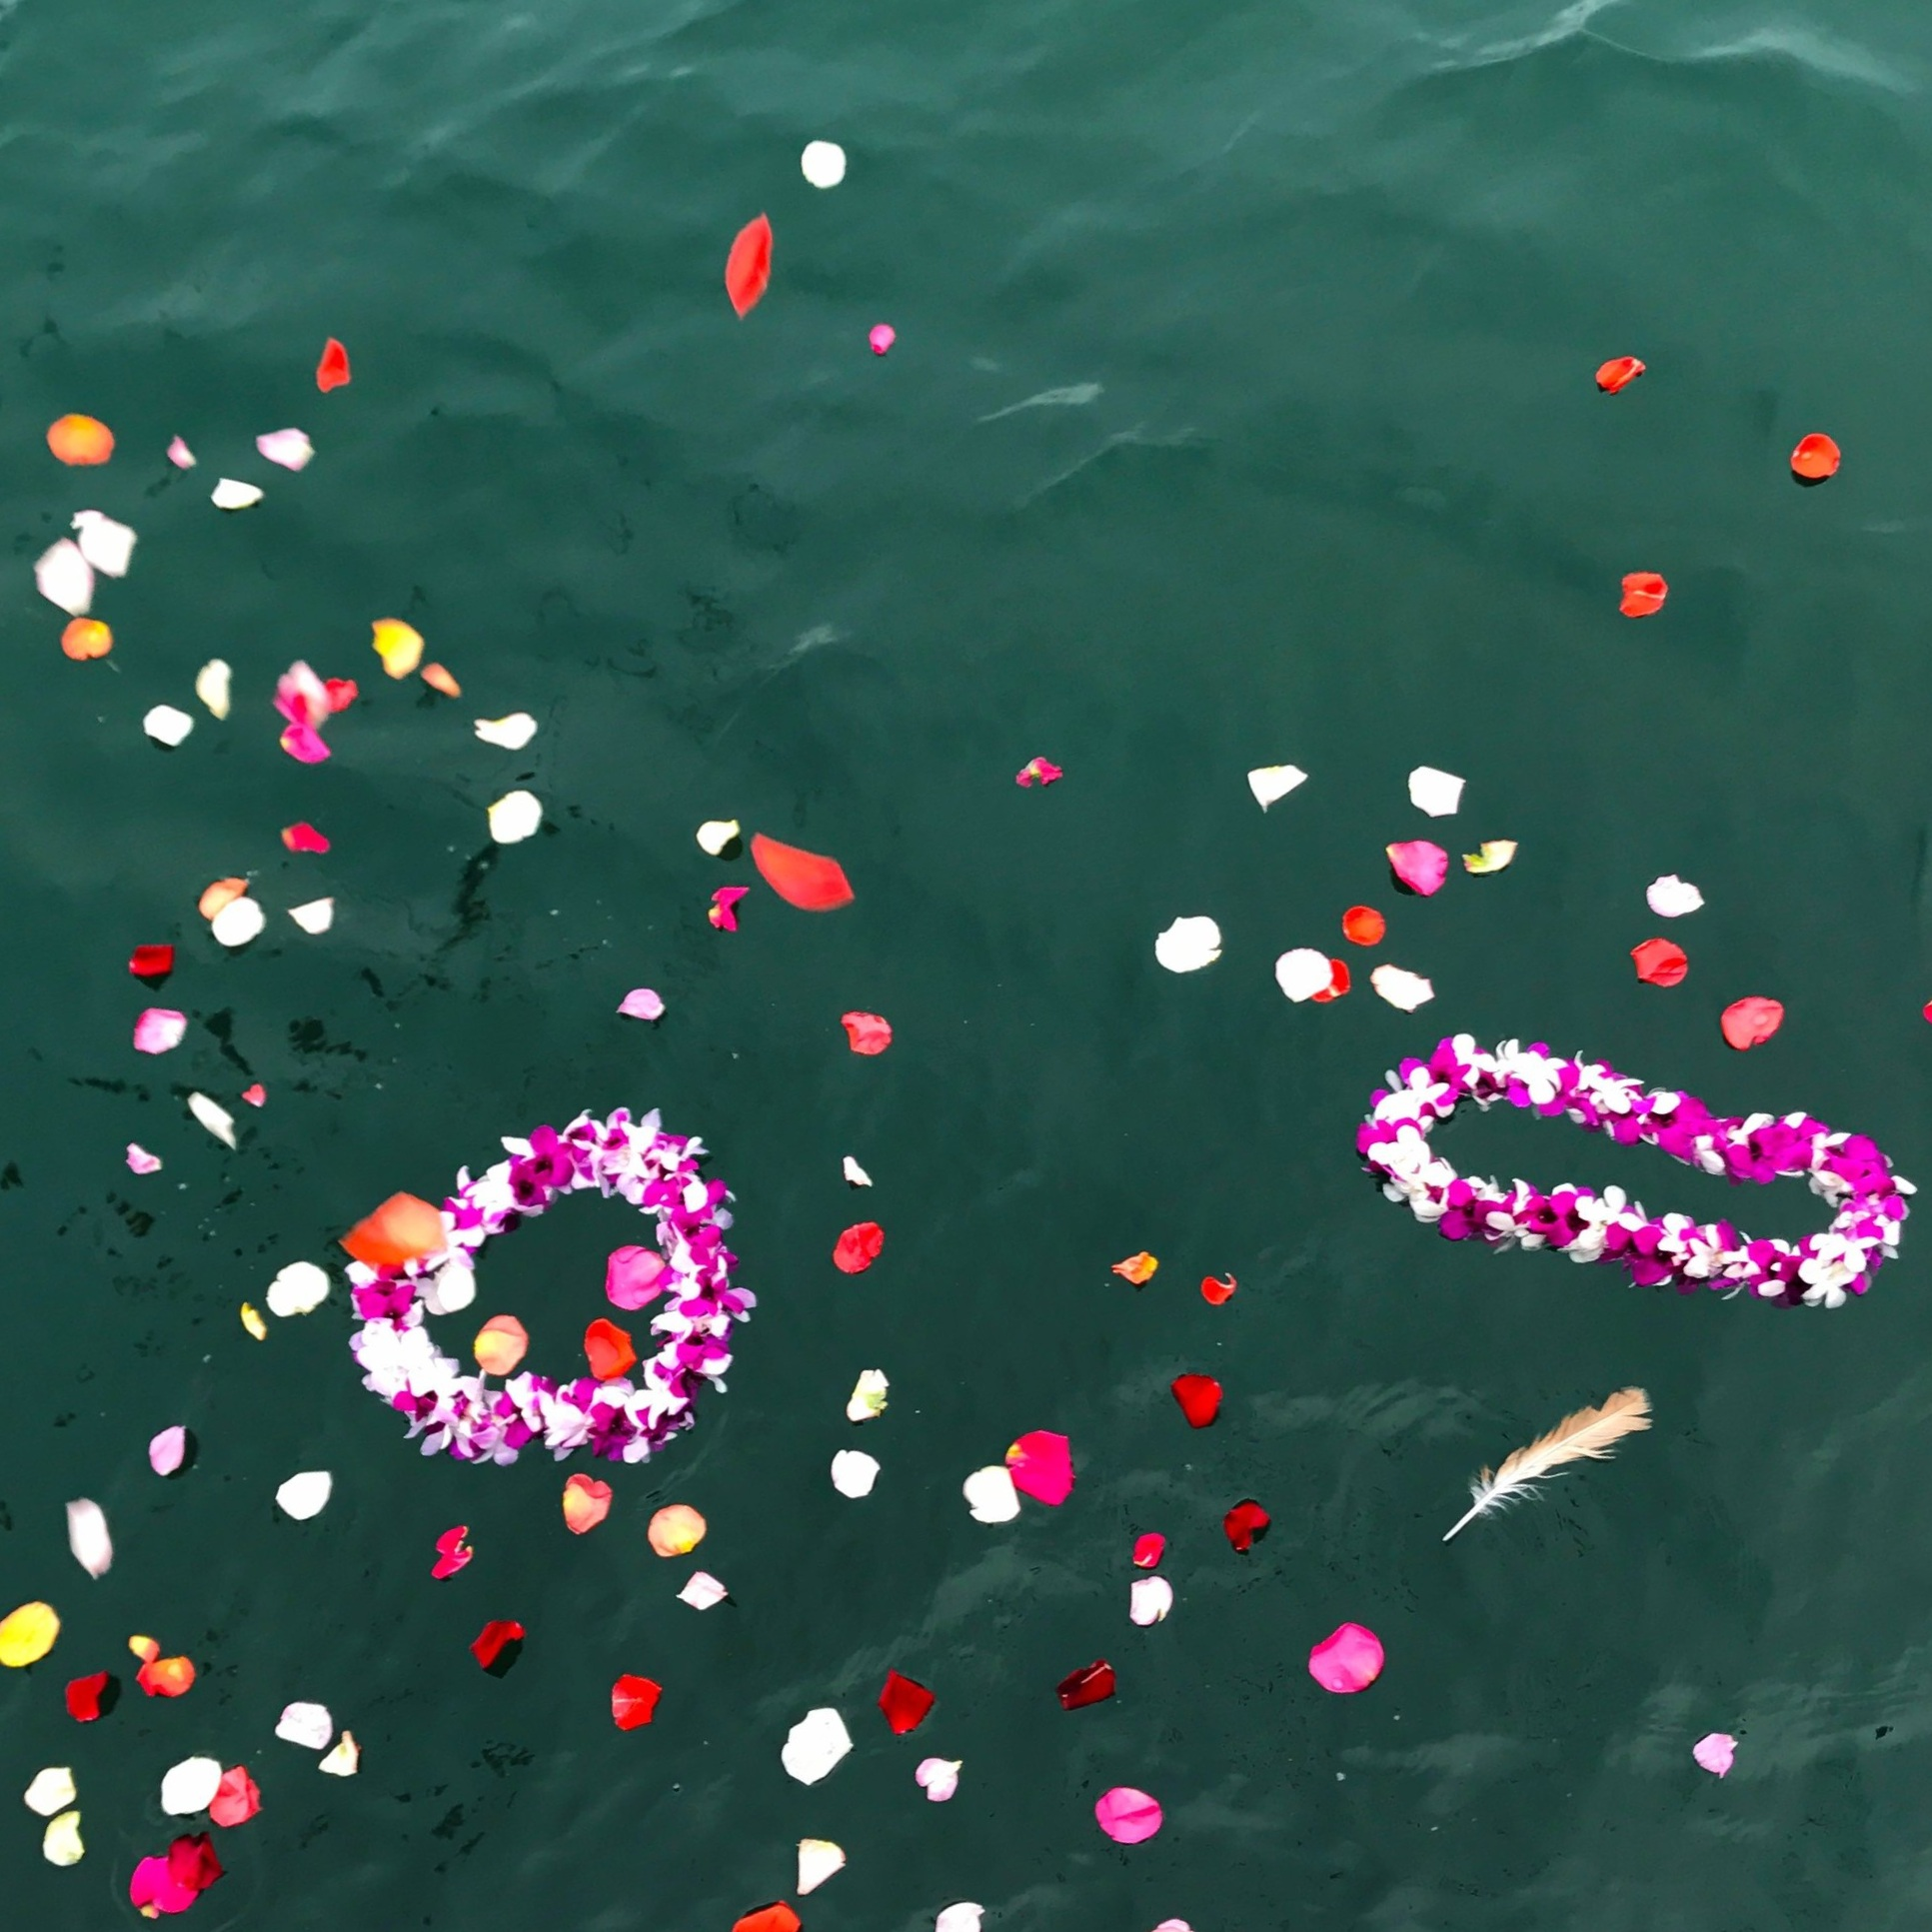 Petals on the water at Bobby's memorial